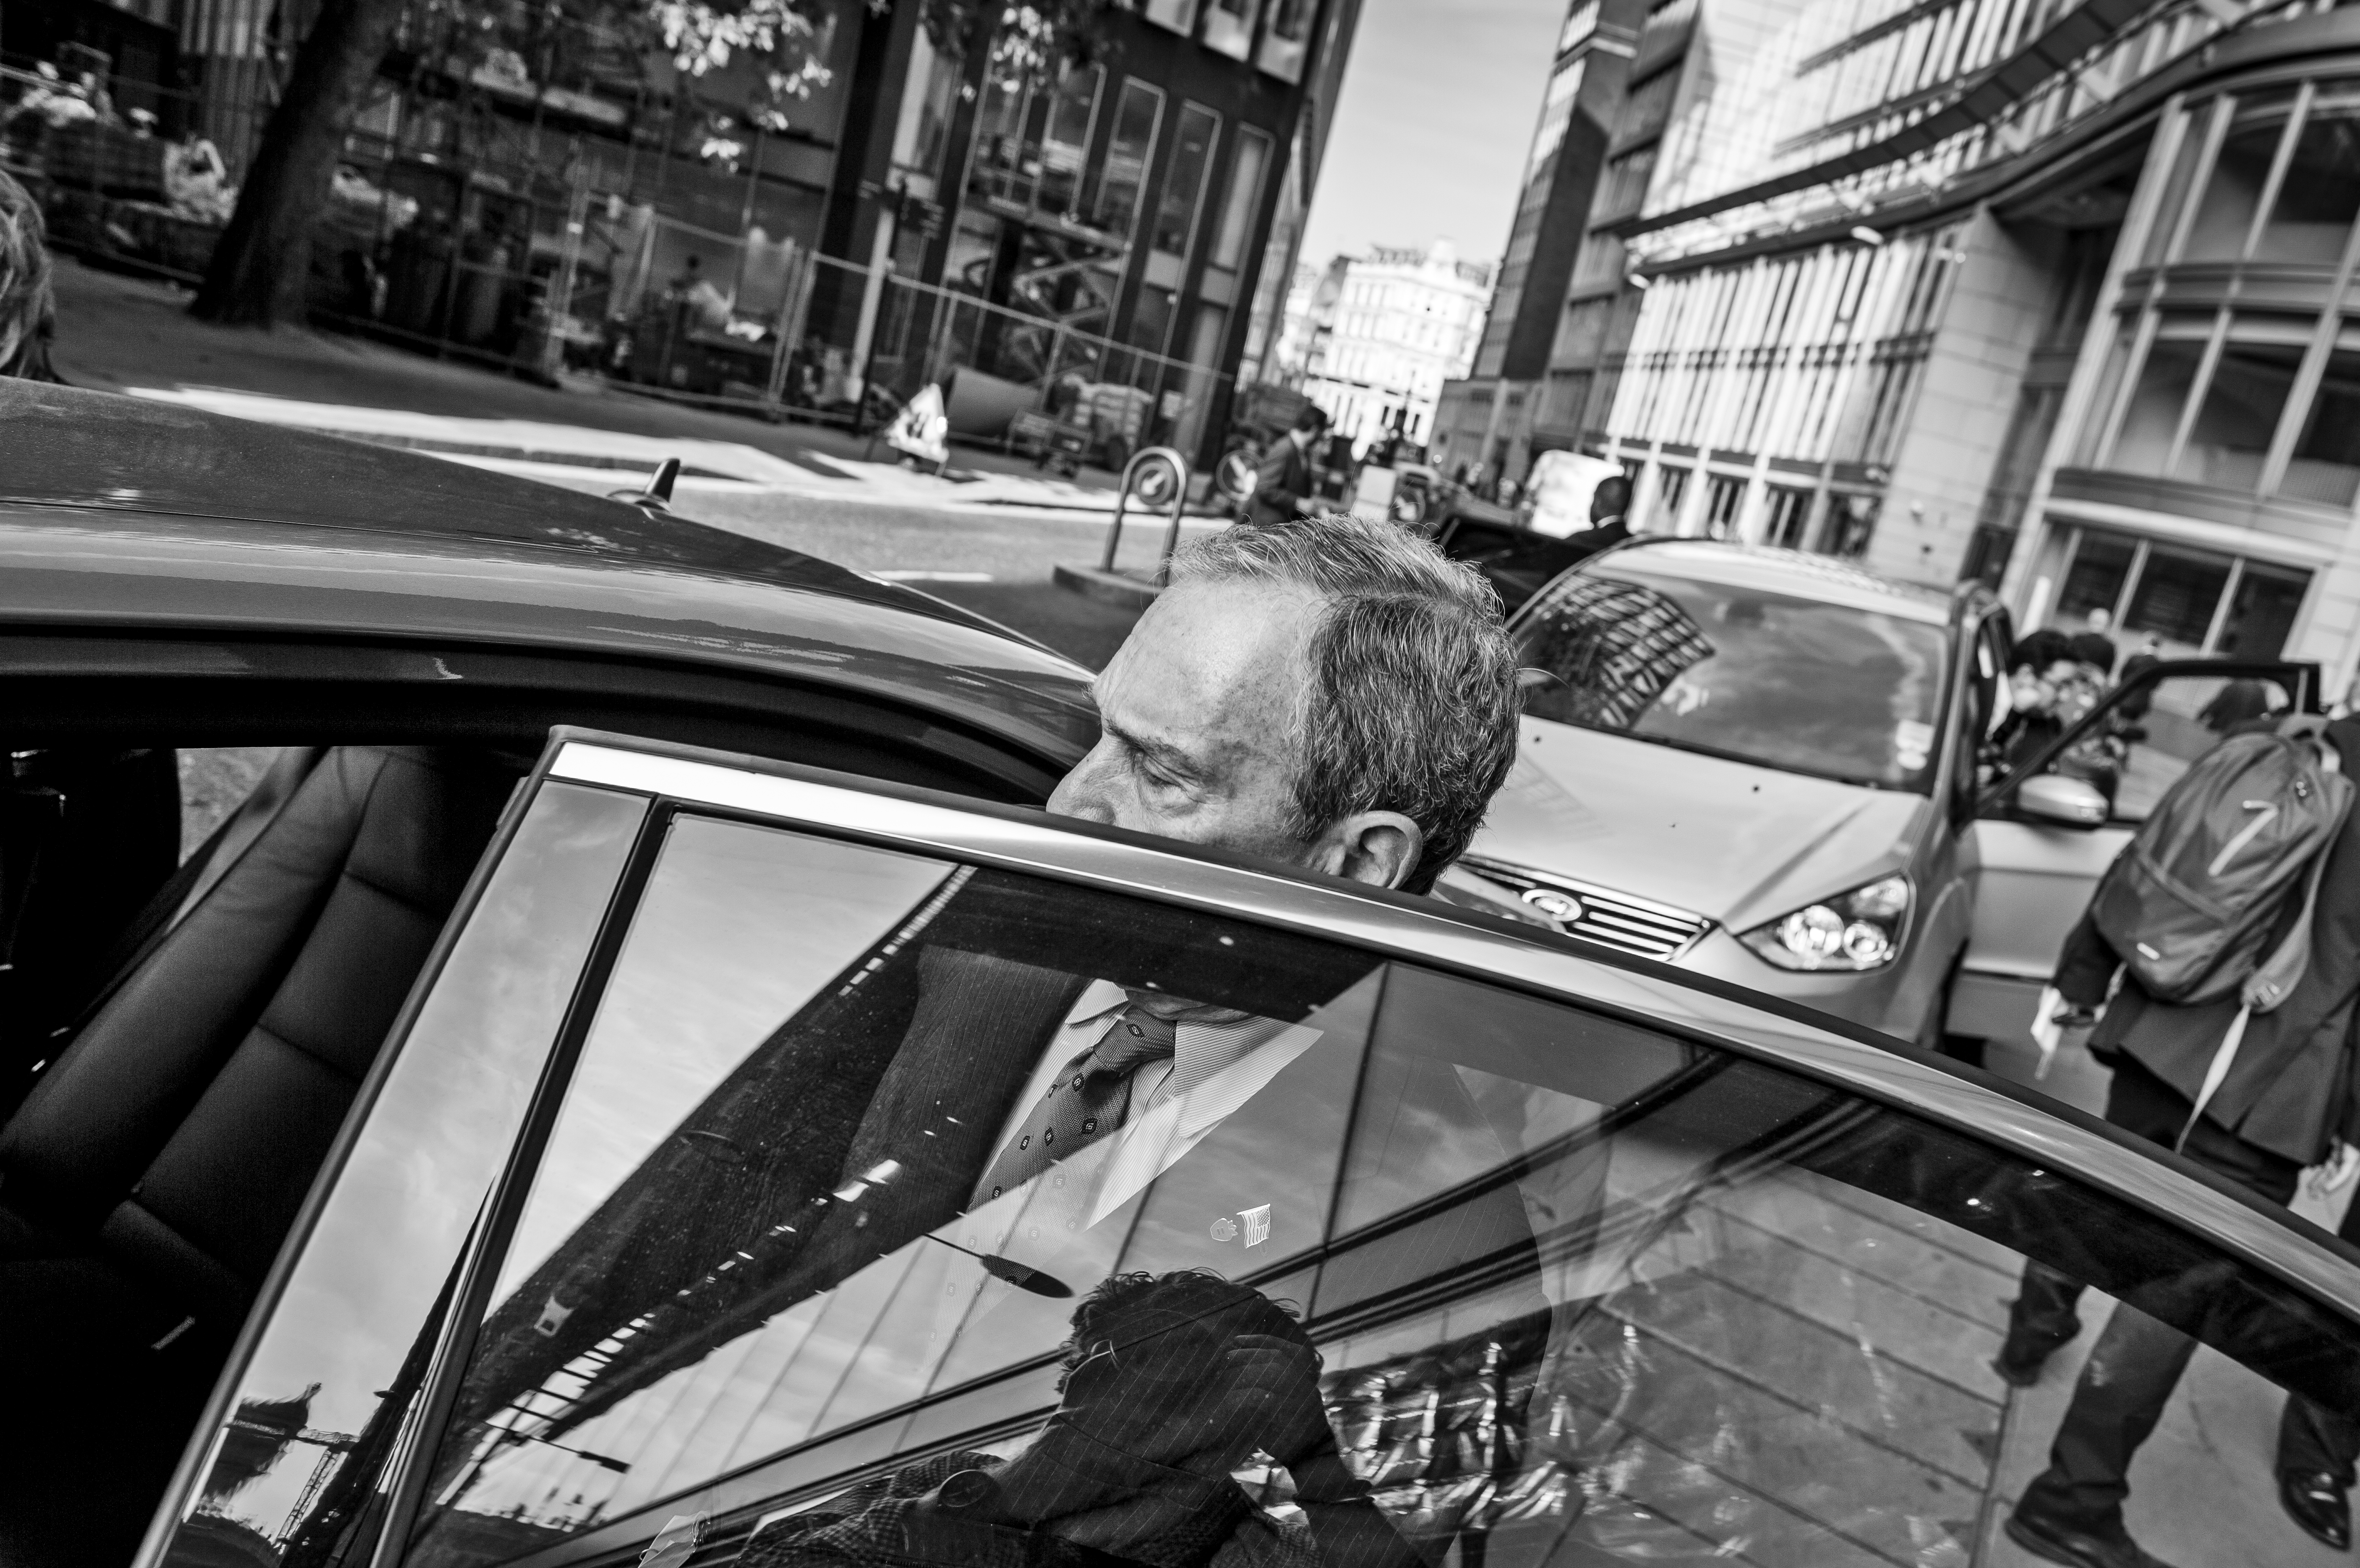 Mayor Bloomberg and his team on the streets of London.